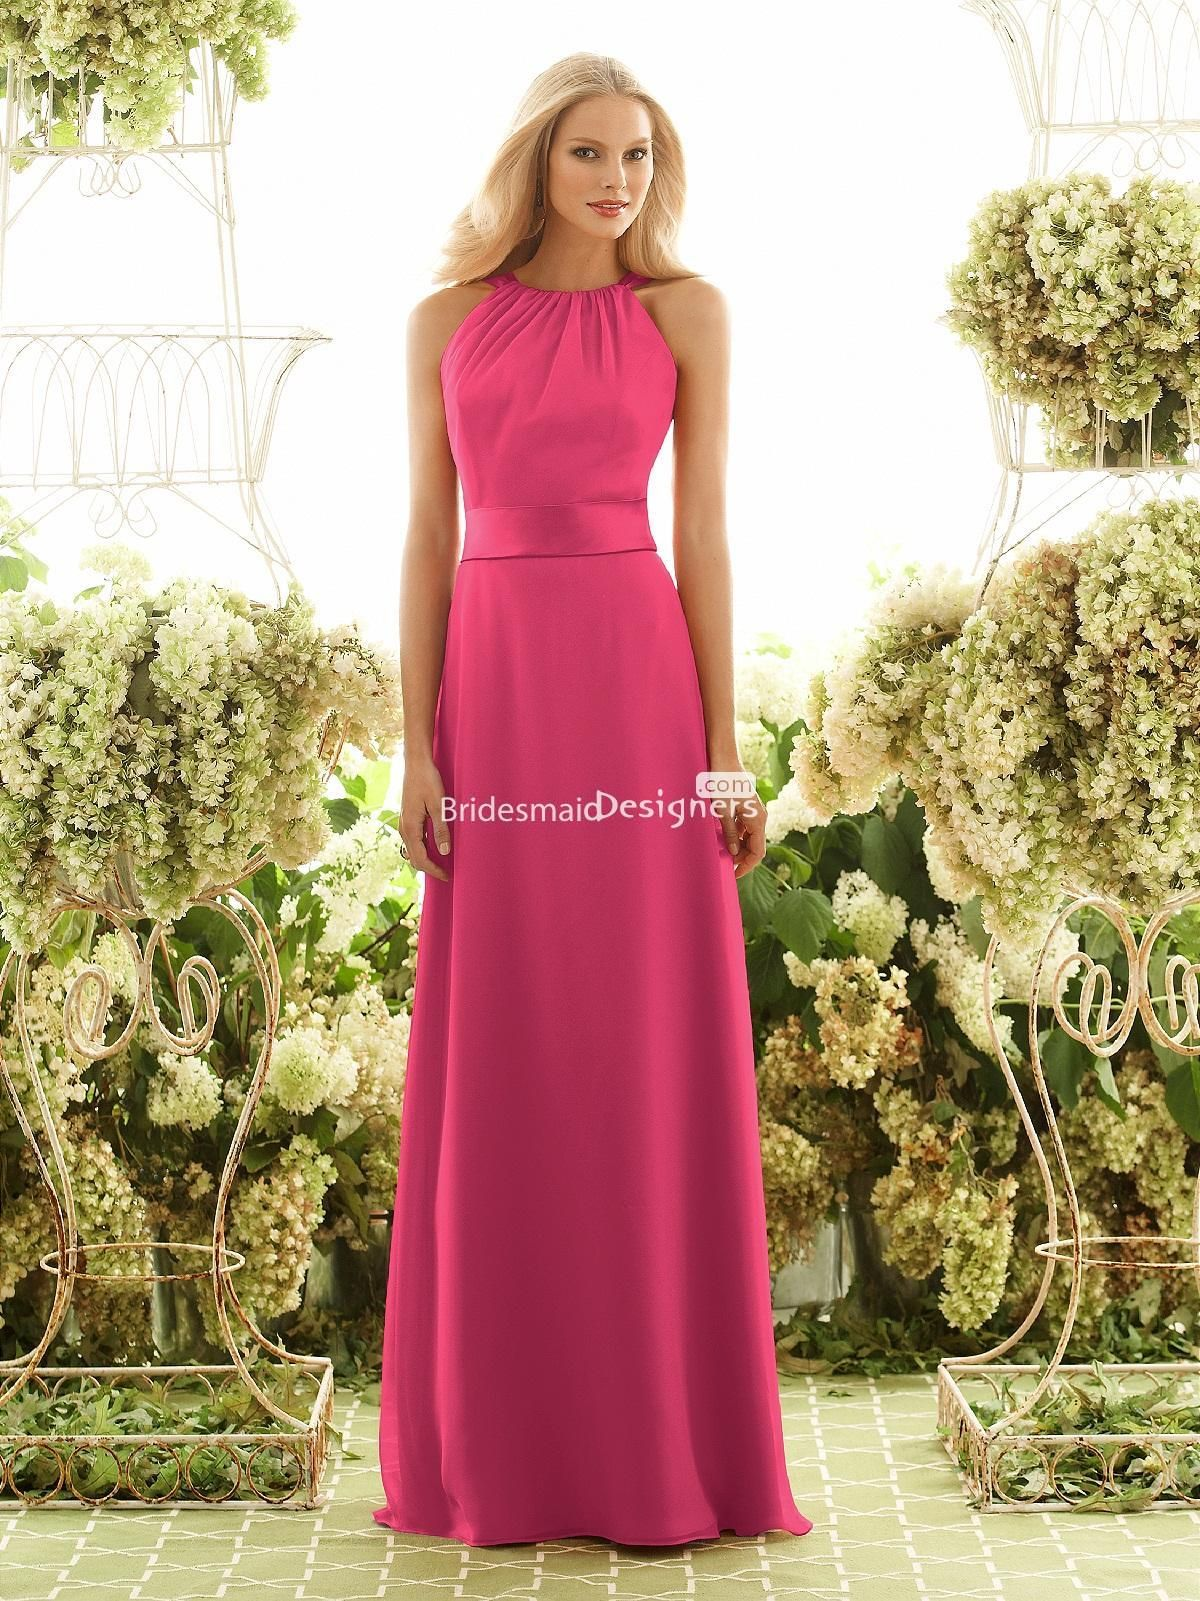 Stunning fuschia halter sleeveless long chiffon bridesmaid dress stunning fuschia halter sleeveless long chiffon bridesmaid dress with satin sash and bow on back ombrellifo Choice Image